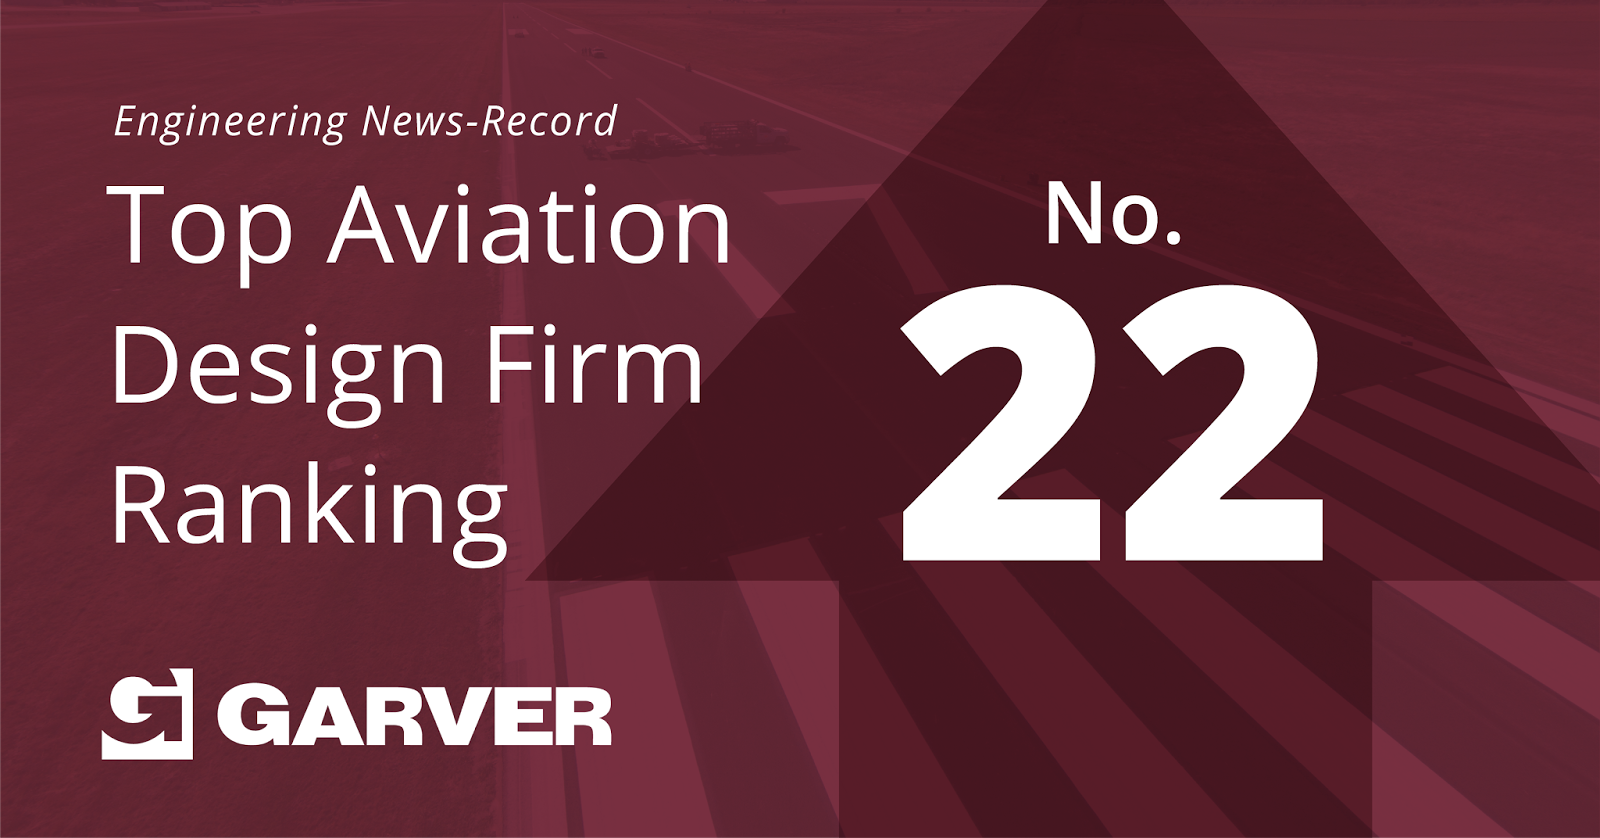 Garver improves in ENR aviation rankings